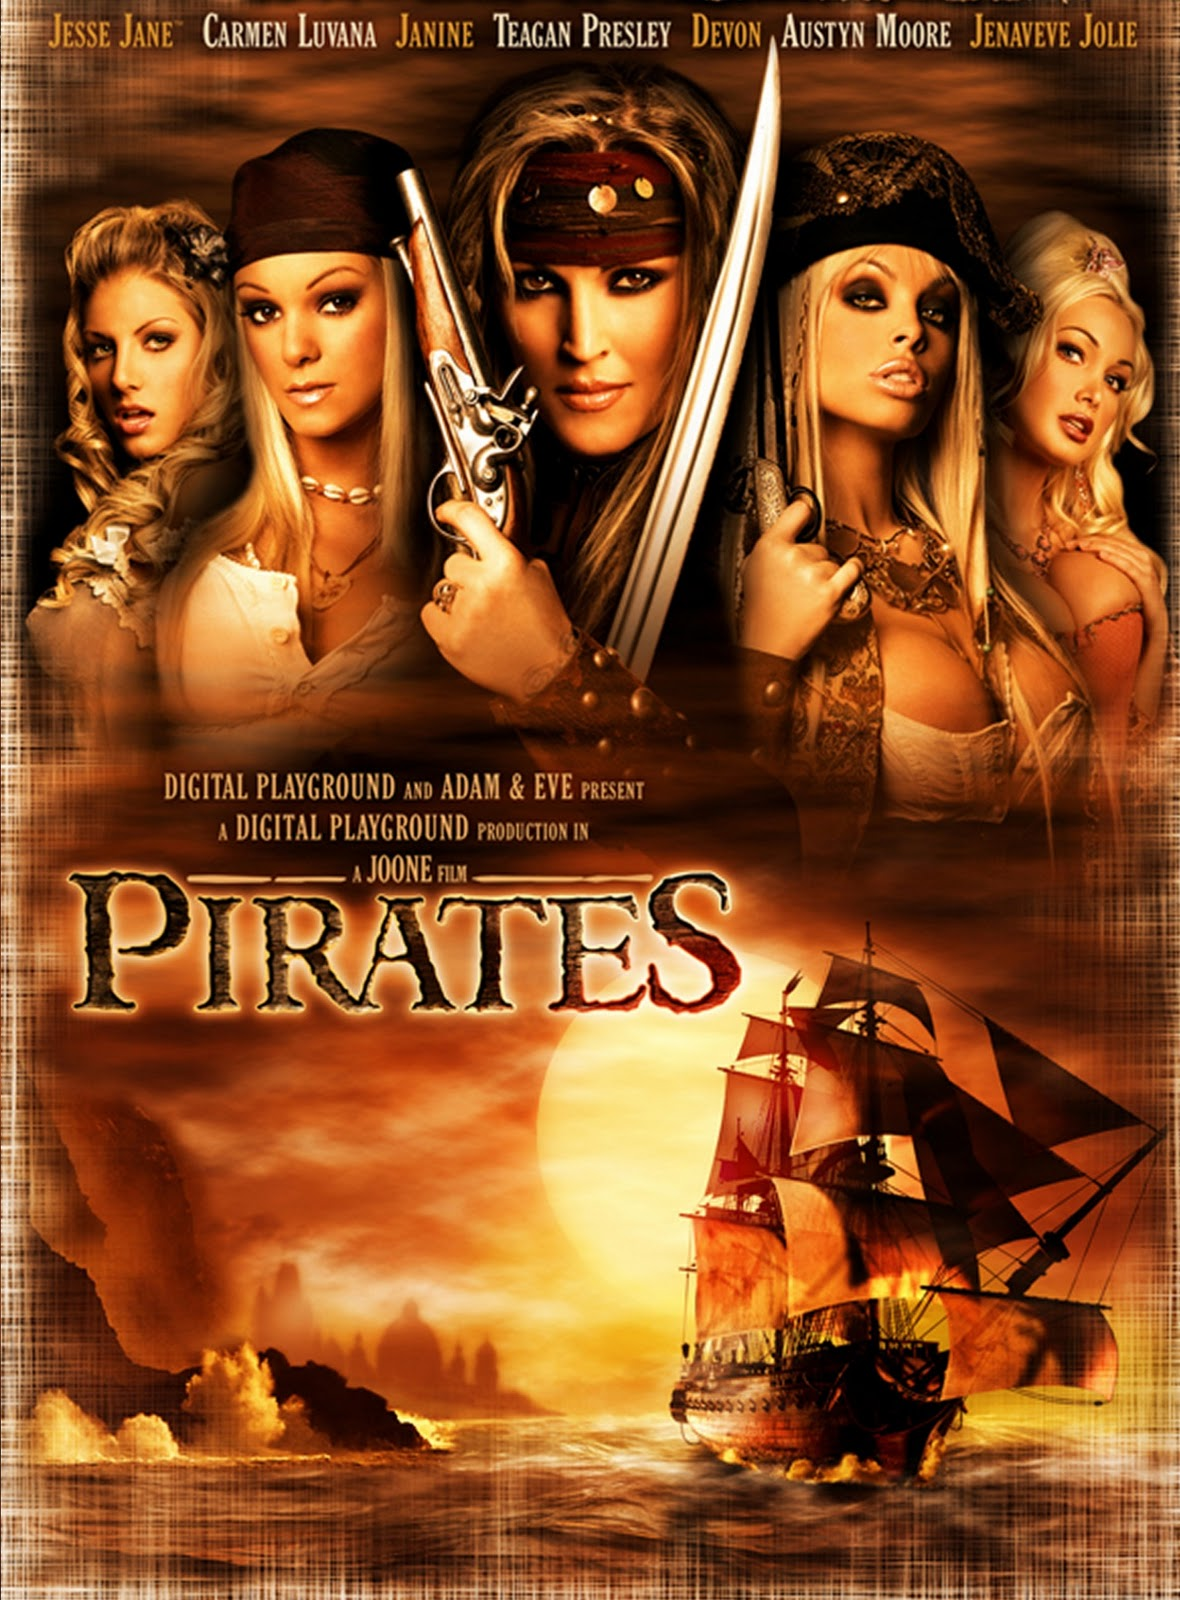 Pirate film best girl sexuality nackt pictures